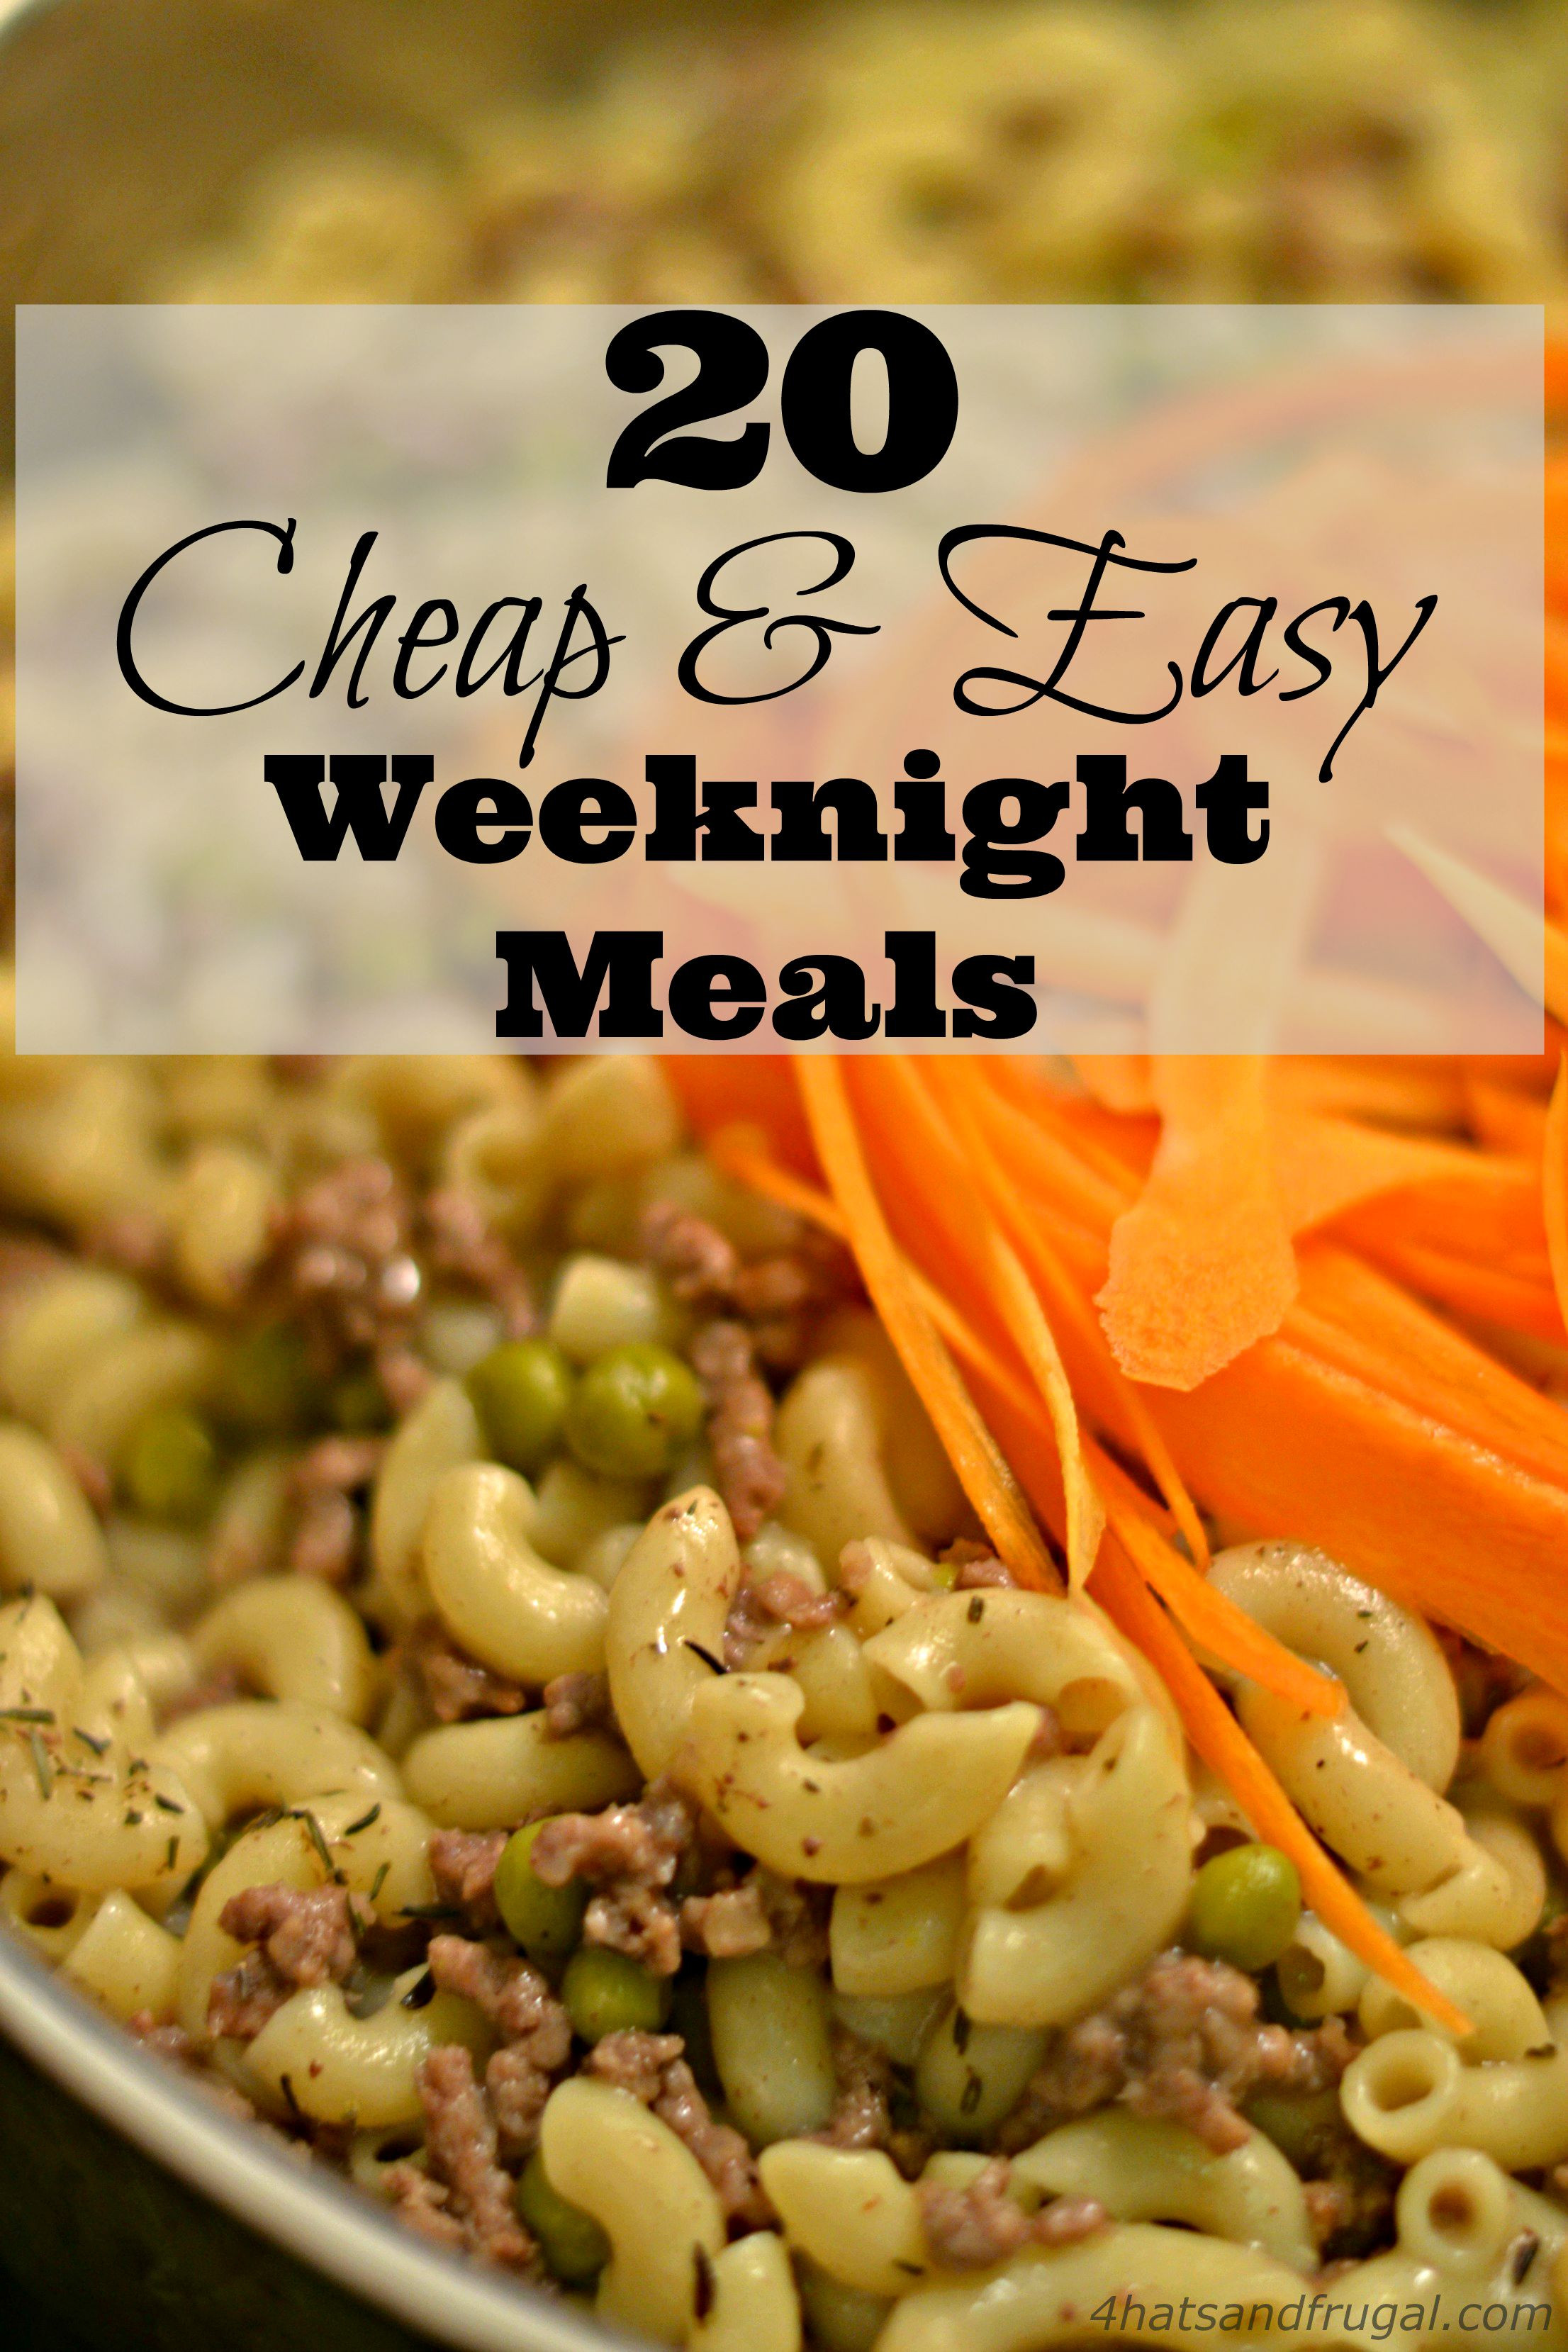 Easy Cheap Dinners  20 Cheap & Easy Weeknight Meals 4 Hats and Frugal